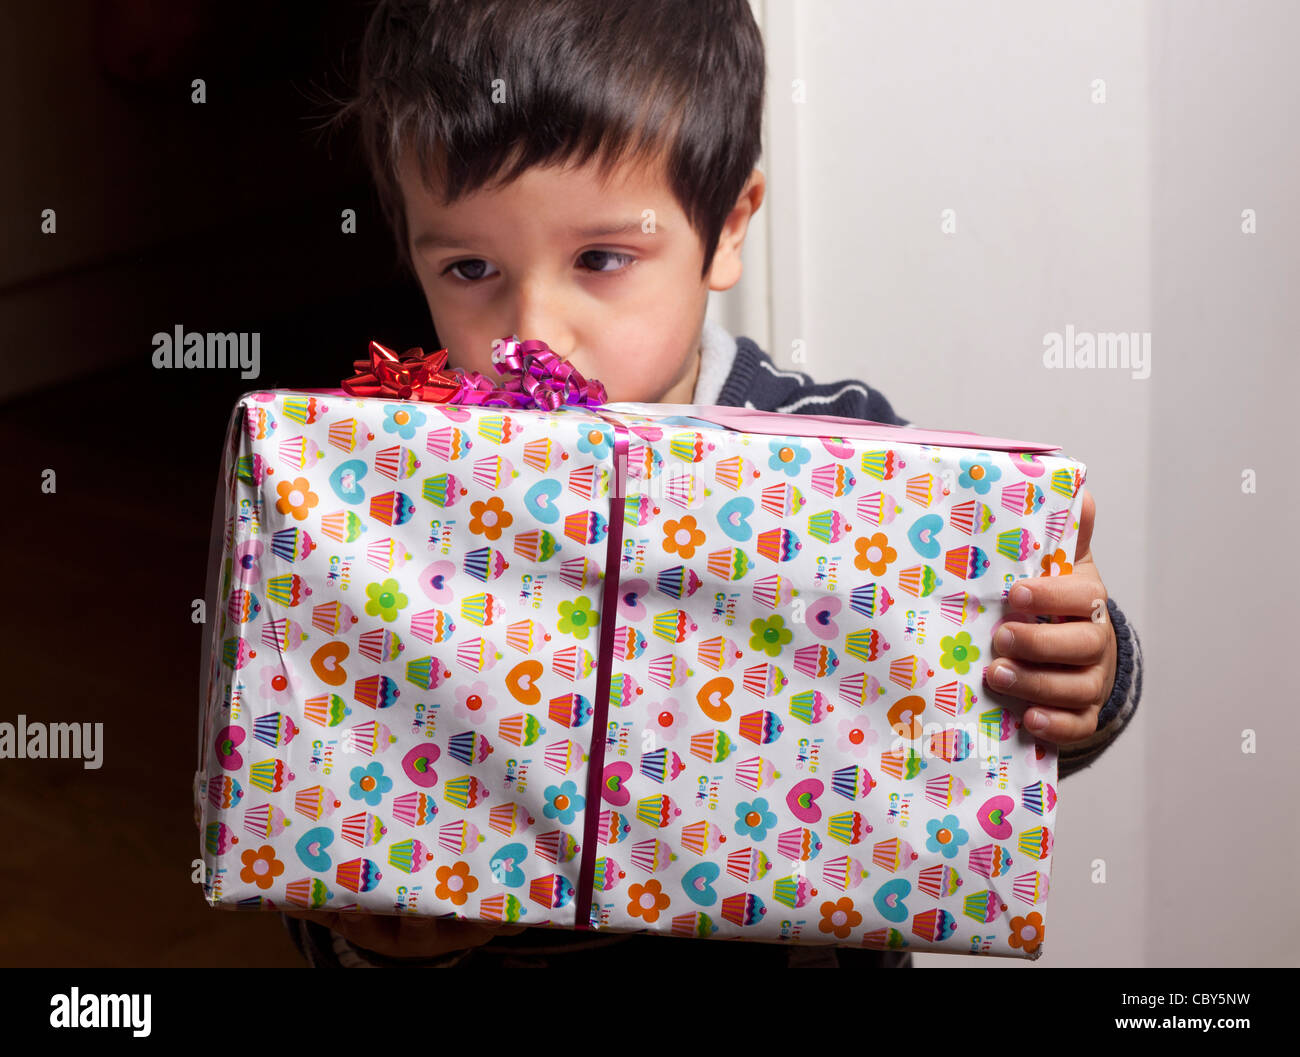 Boy holding a present Photo Stock